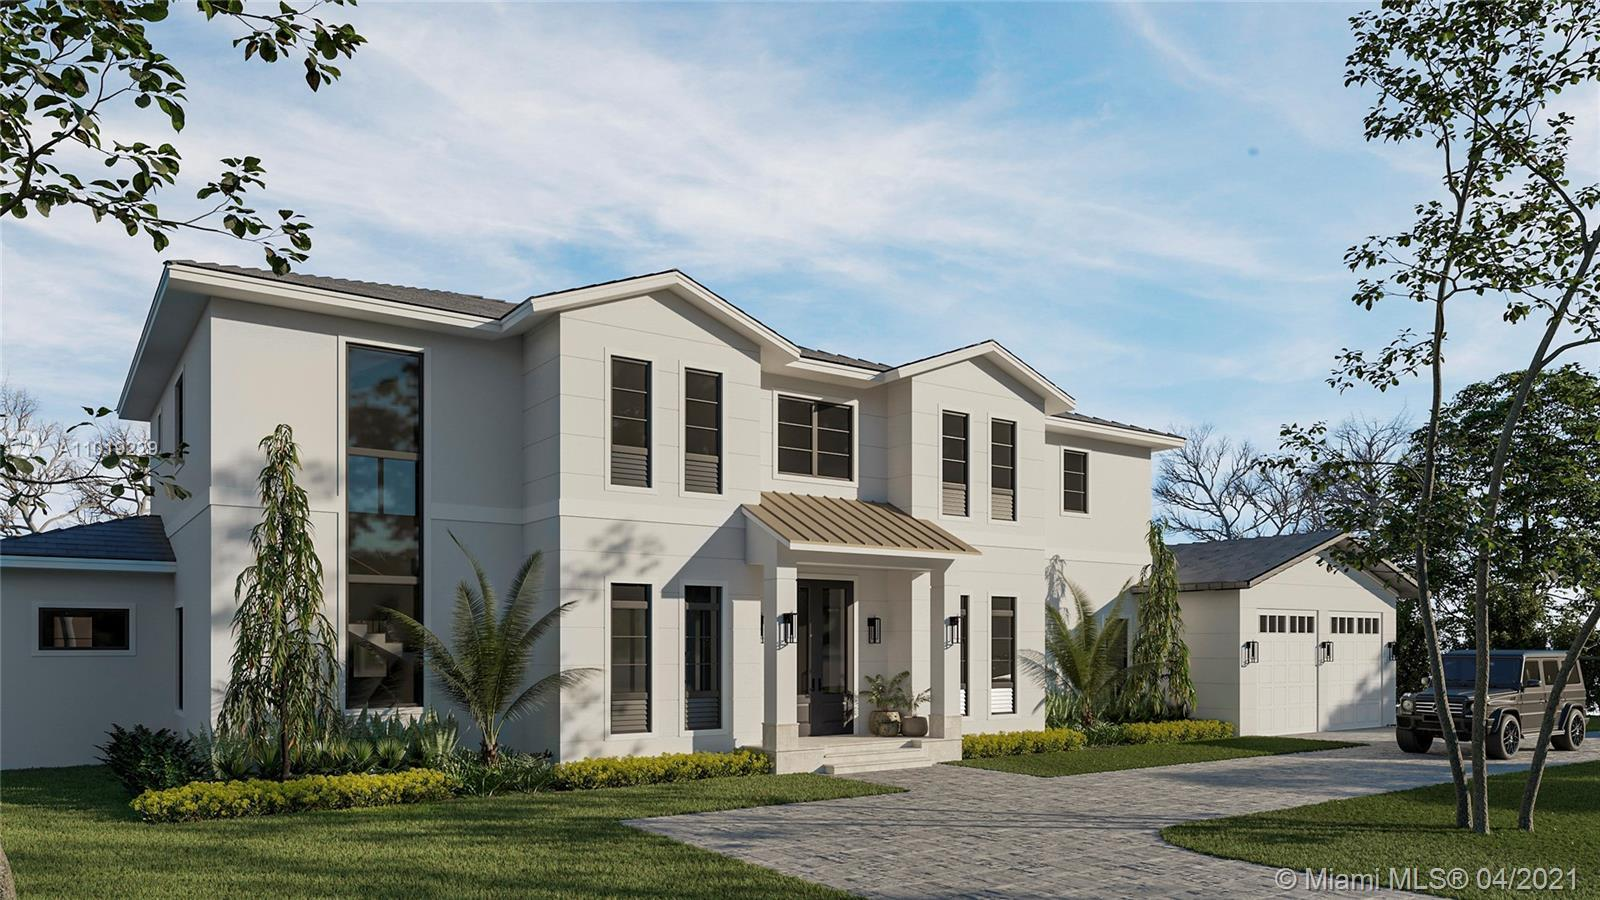 This new lakefront Hollub home under construction embodies the South Florida lifestyle, providing th